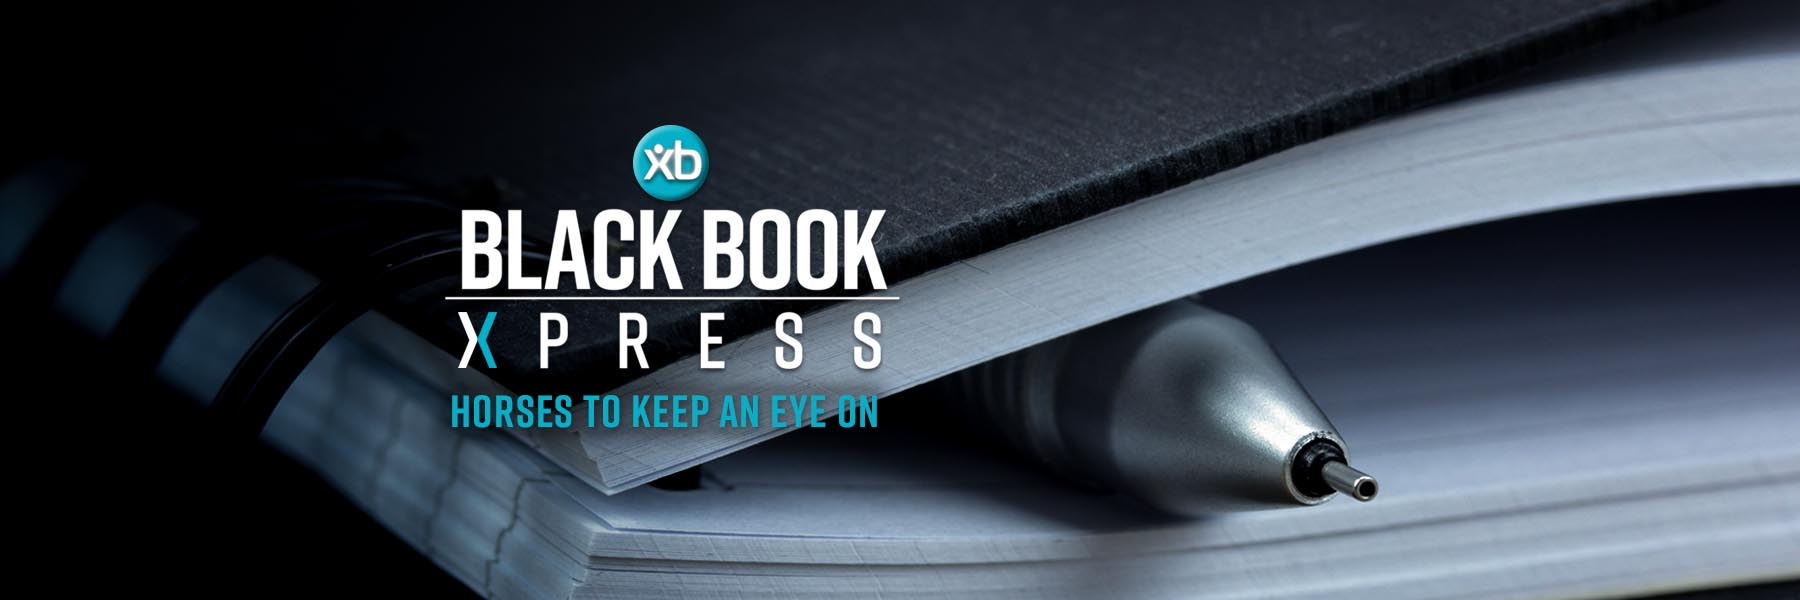 Jeff Siegel's Blog: Black Book Xpress (updated March 17, 2021)